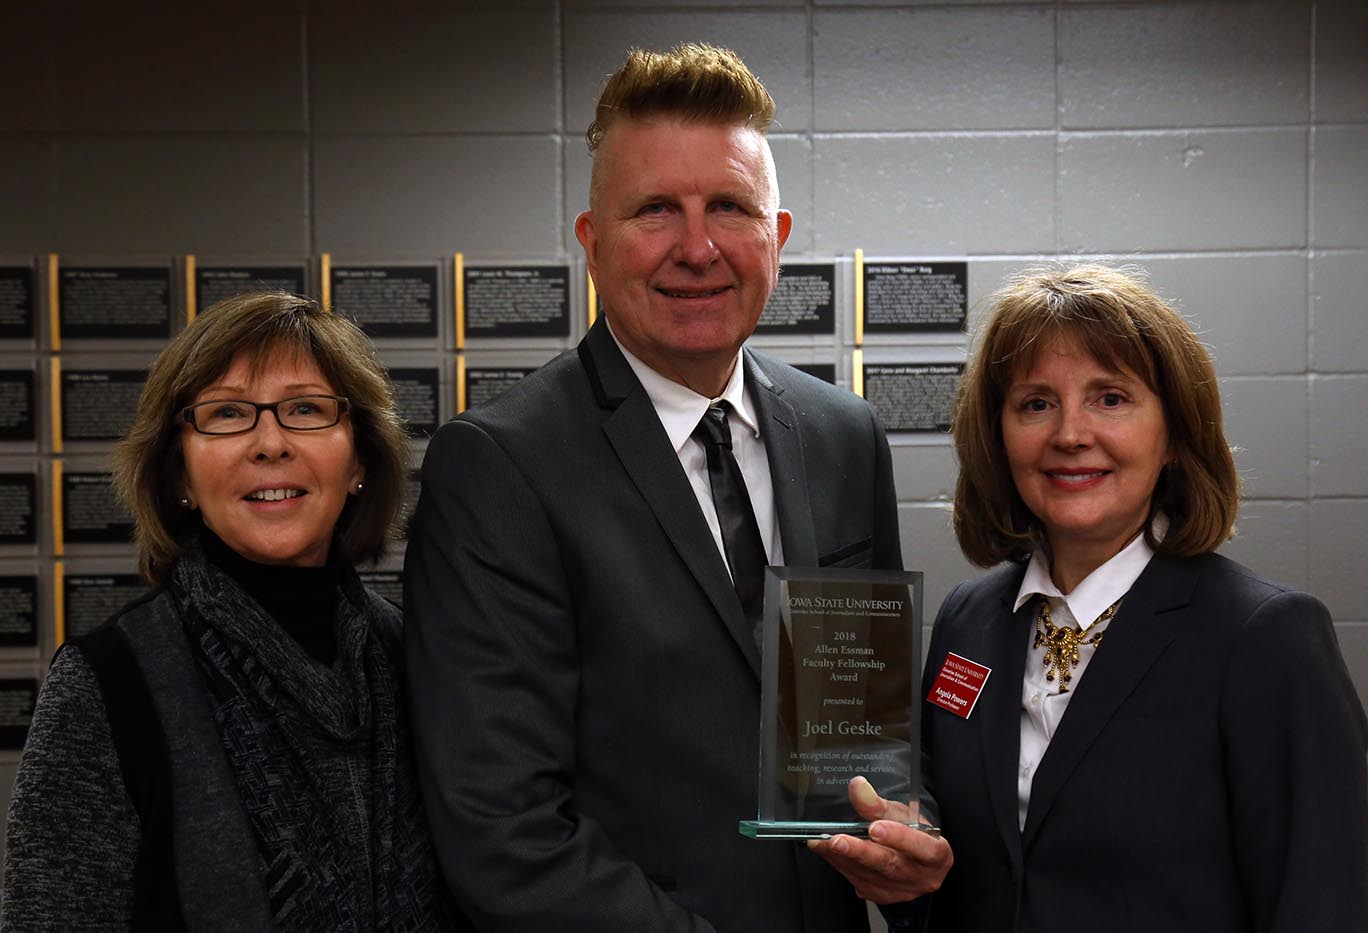 Denise Essman, Joel Geske and Angela Powers stand with plaque